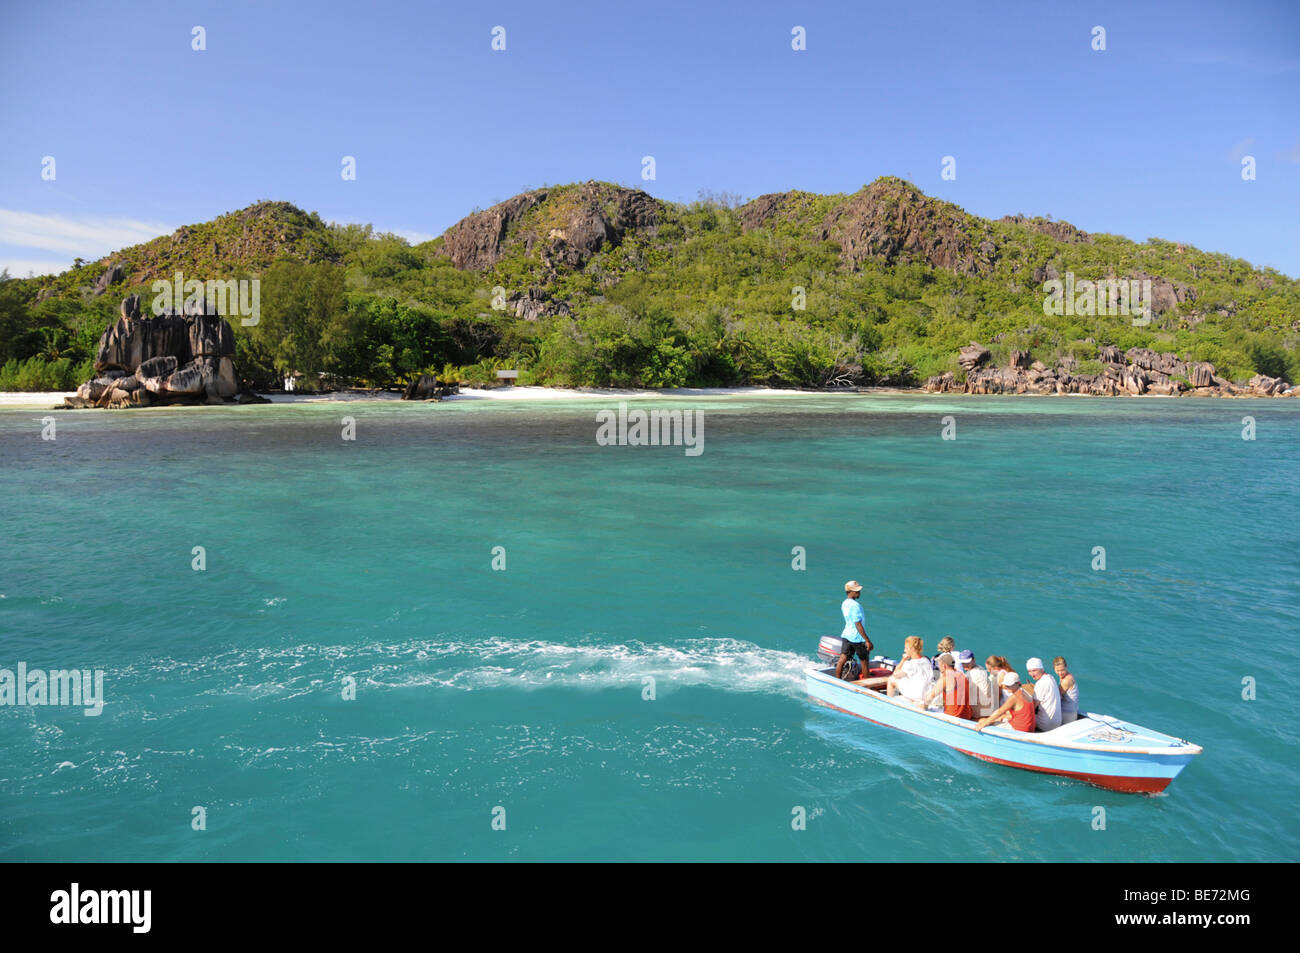 Boat with tourists, Curieuse Island, Seychelles, Africa, Indian Ocean - Stock Image